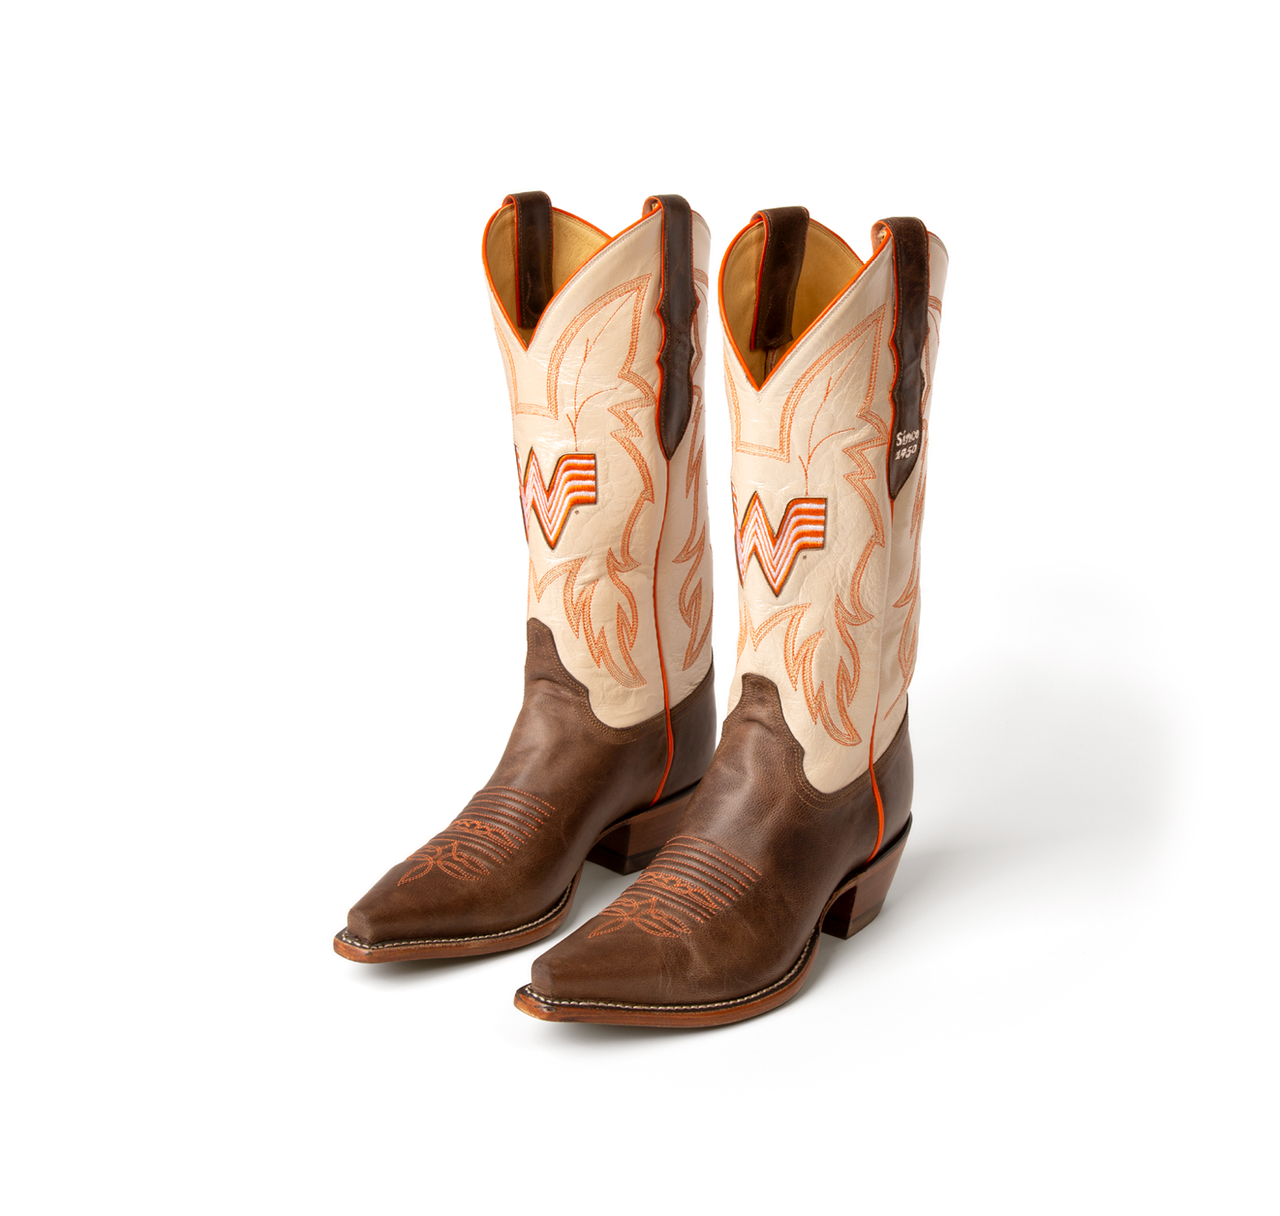 Naturally, There Are Whataburger Cowboy Boots Now